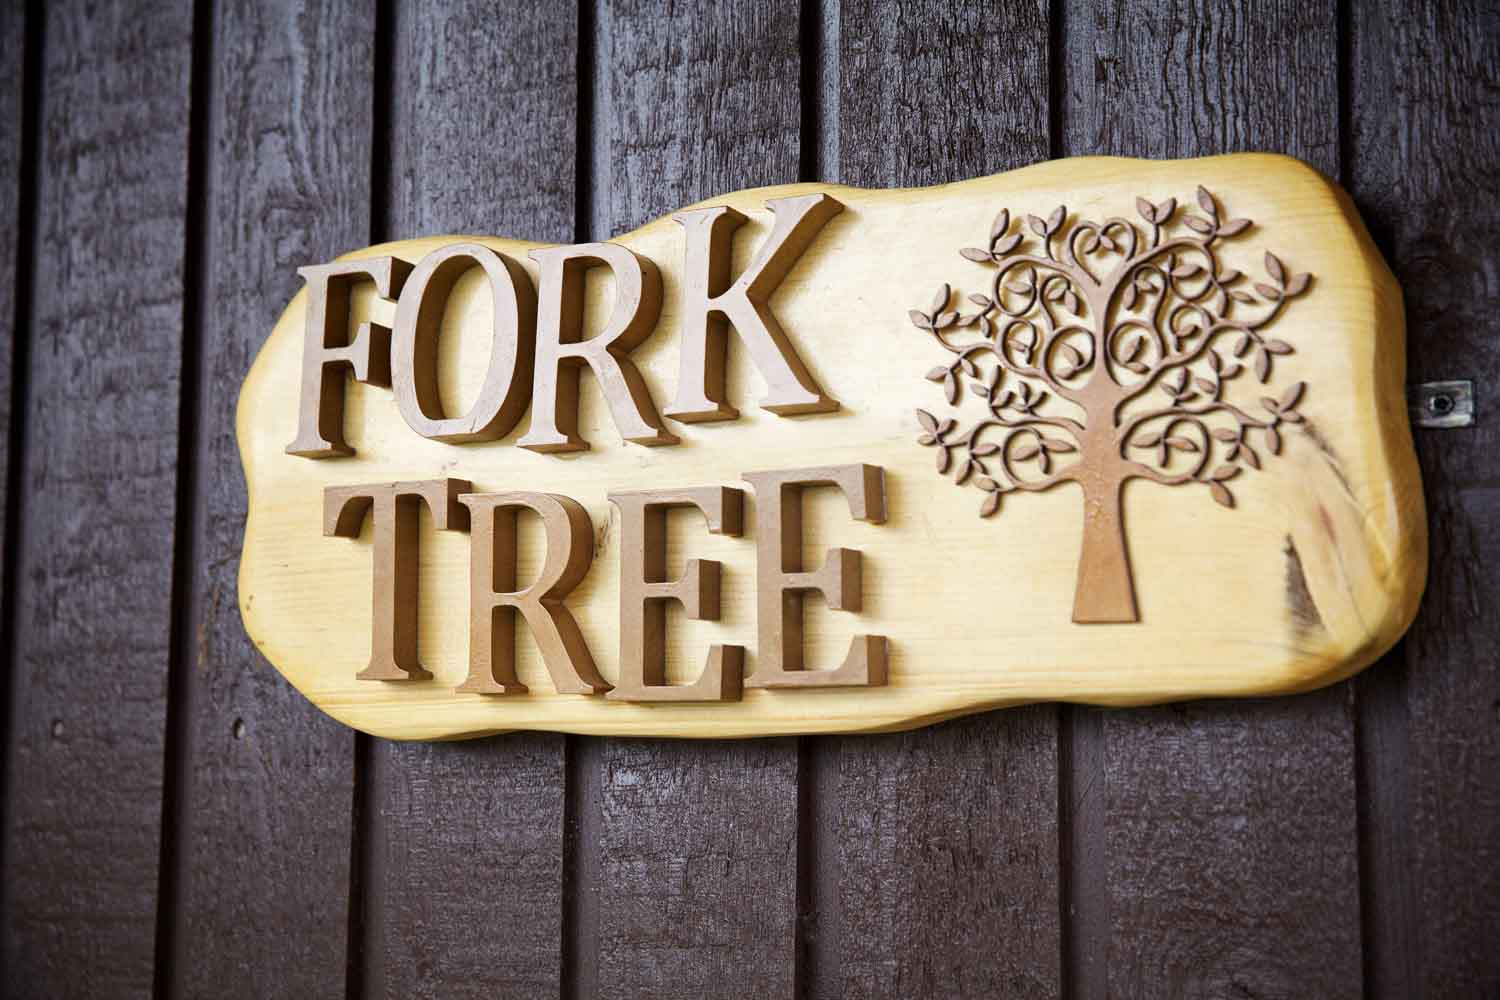 Fork-Tree-Lodge-12.jpg